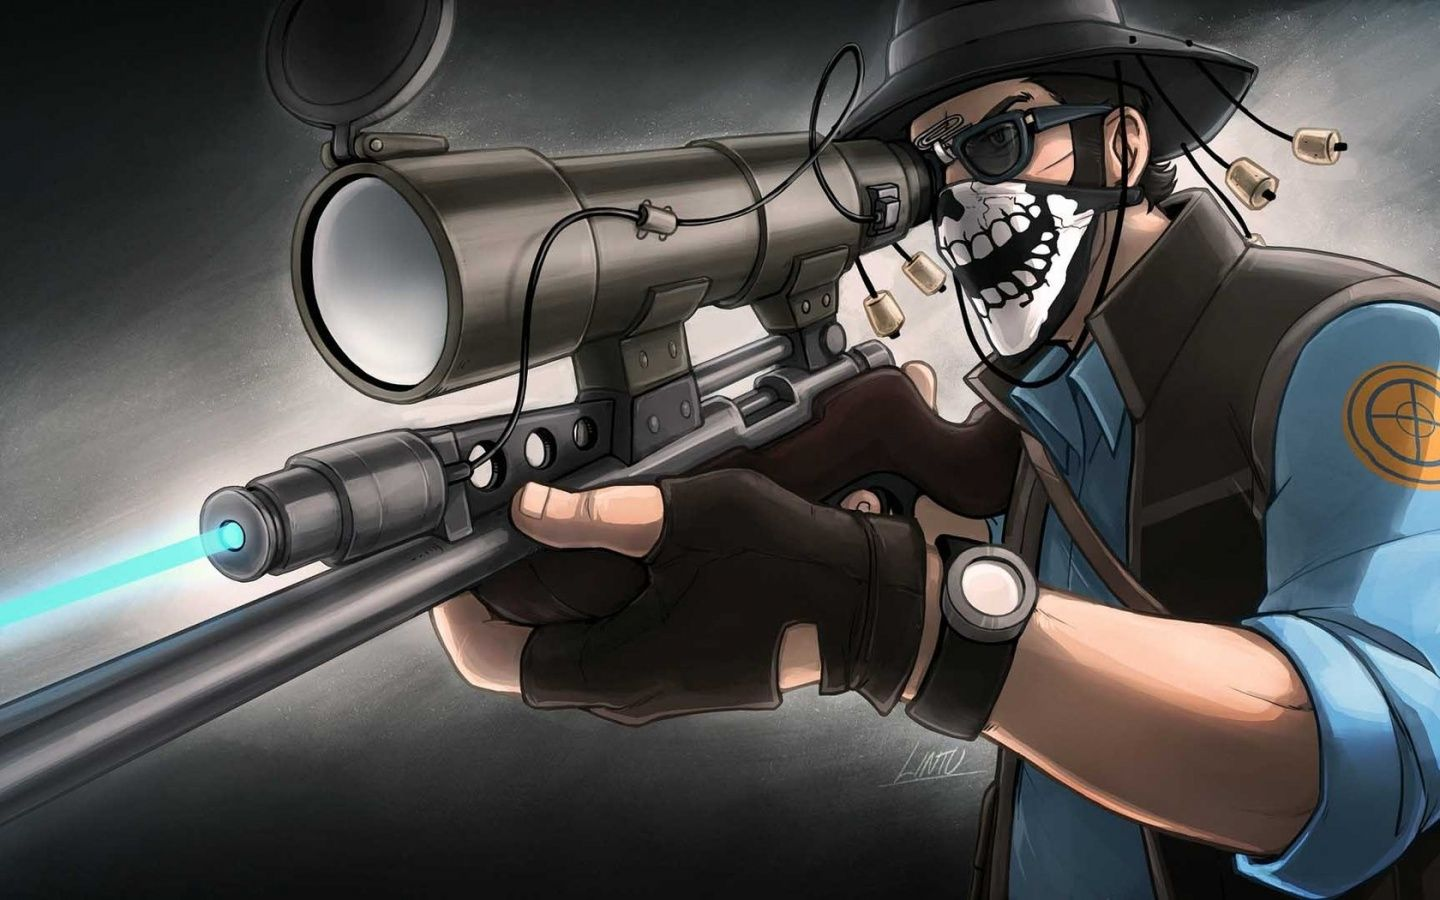 team fortress 2 background